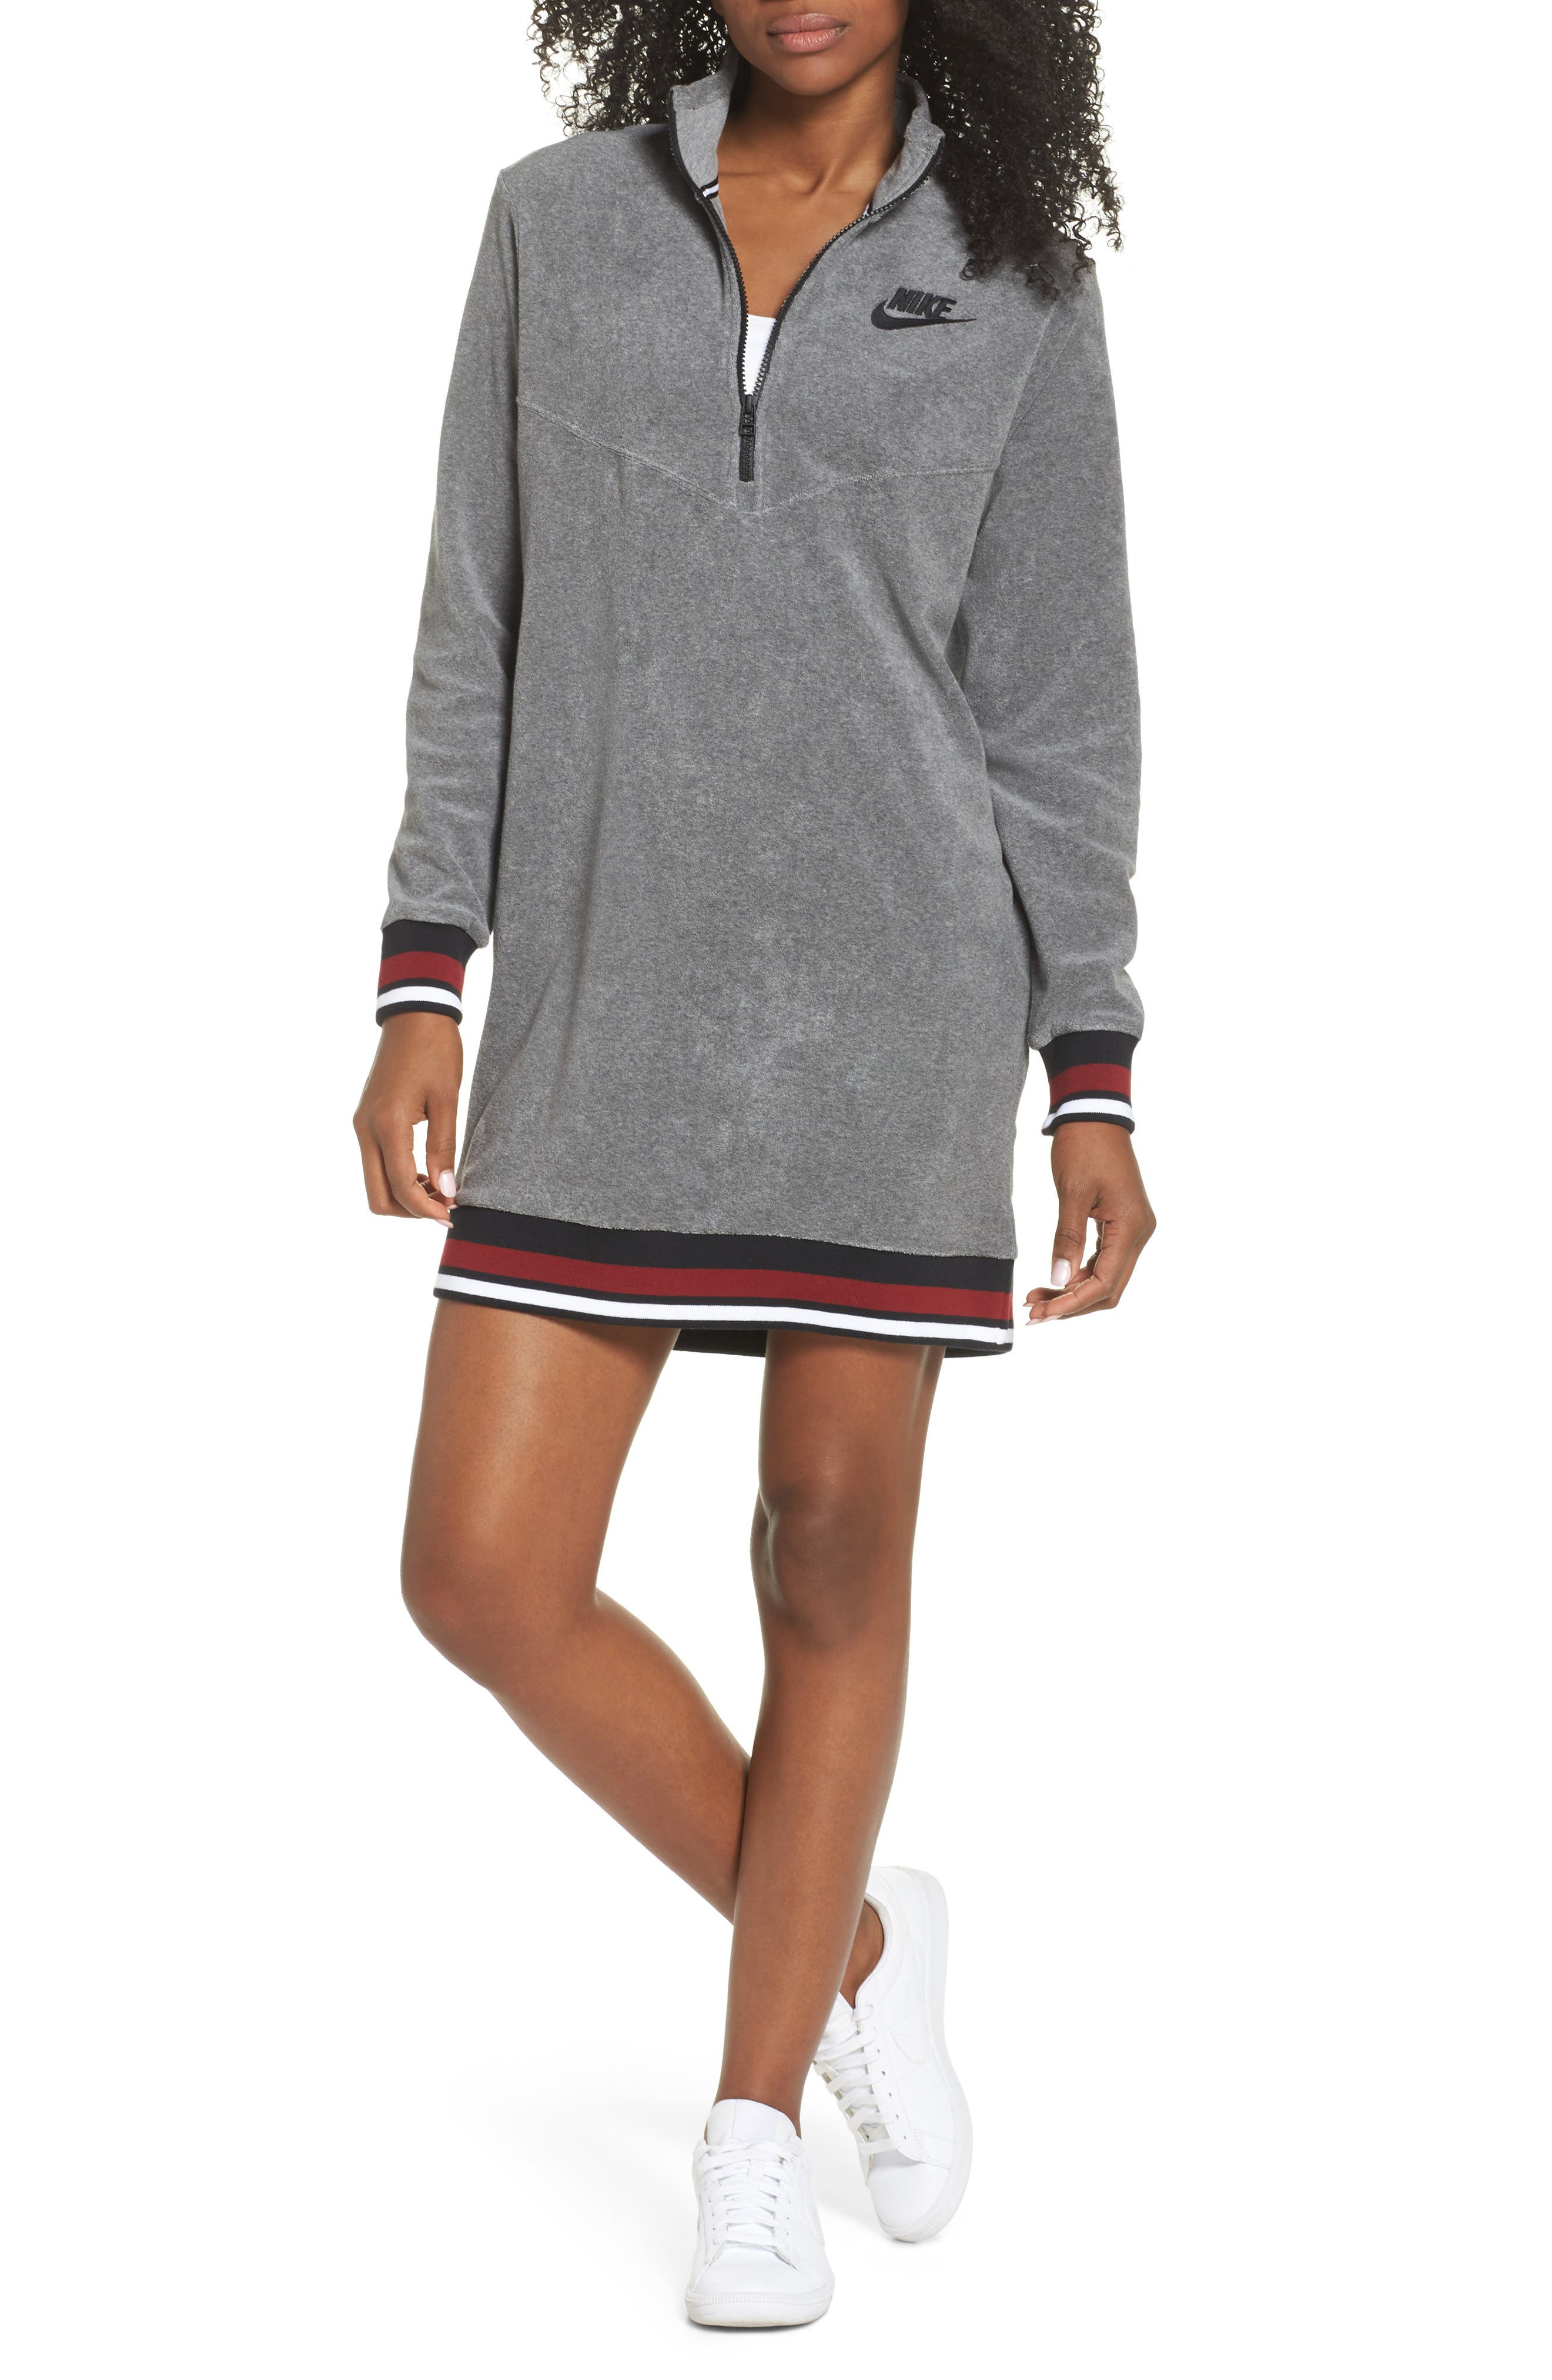 Nike Sportswear French Terry Sweatshirt Dress